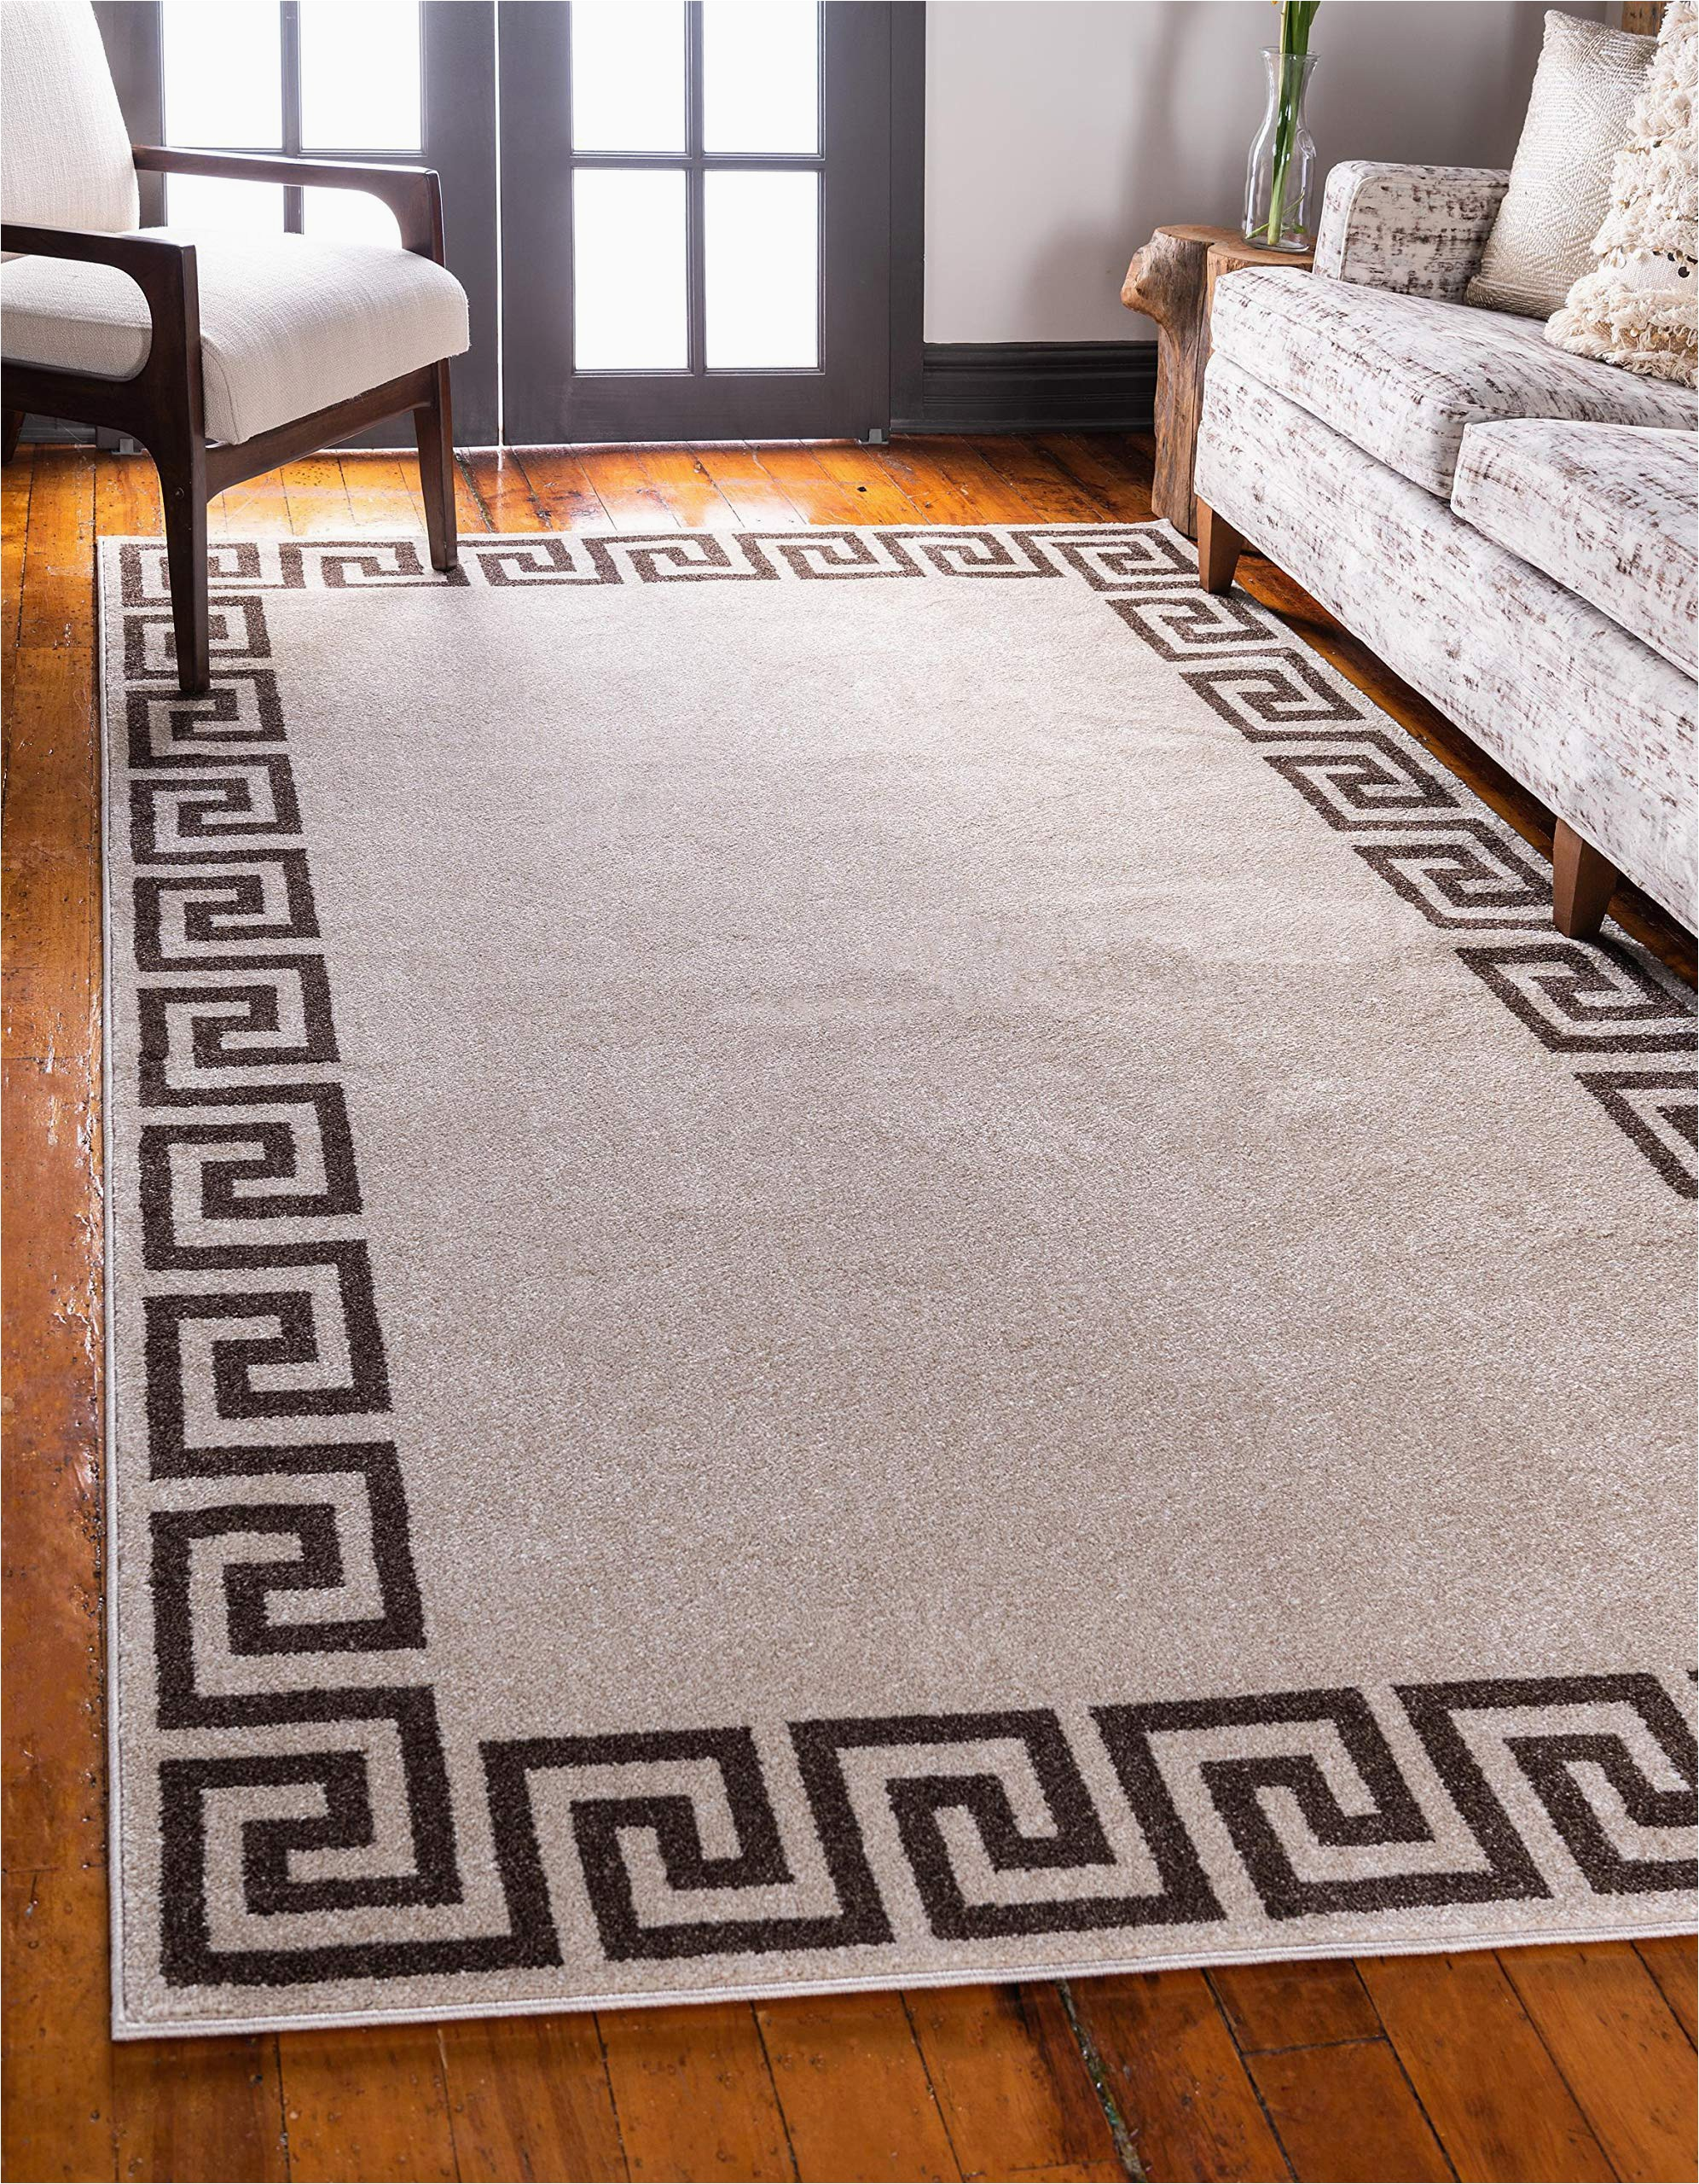 5 X 8 area Rugs with Rubber Backing Unique Loom athens Geometric Casual area Rug 5 0 X 8 0 Beige Brown